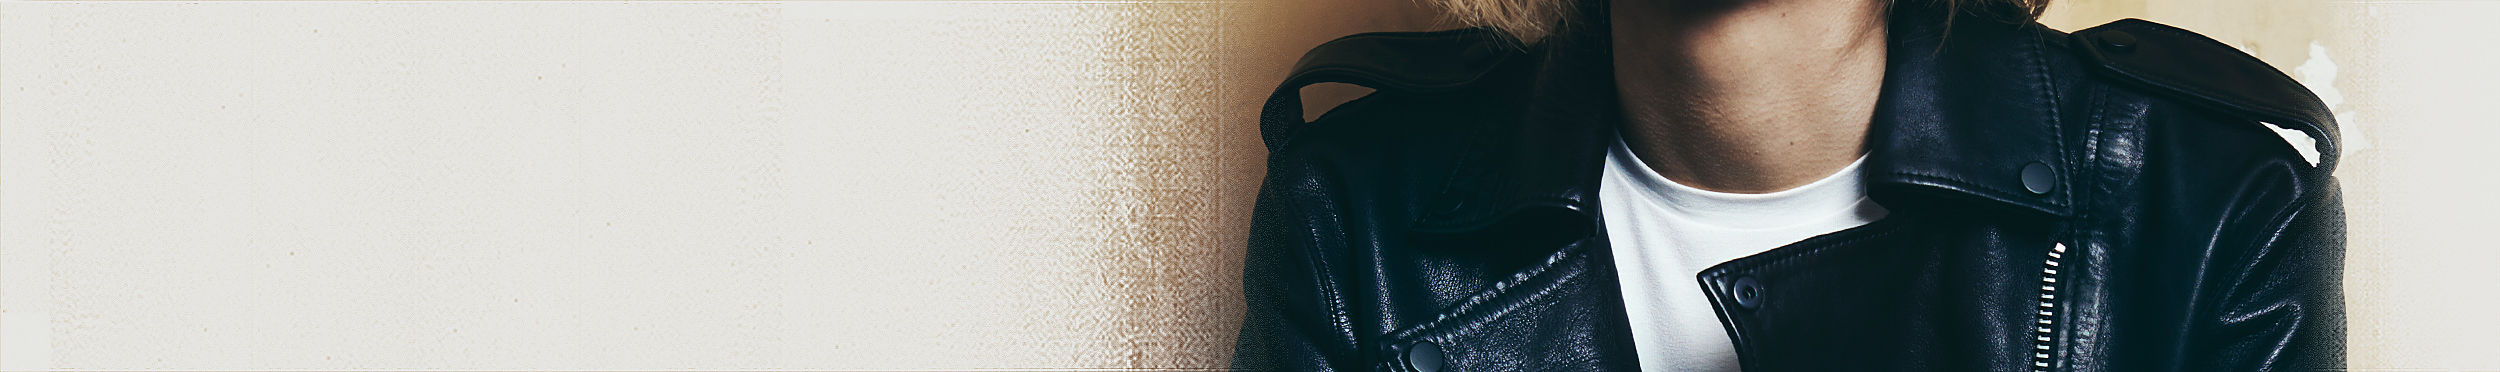 AllSAINTS: Women's Leather Jackets - Iconic Pieces